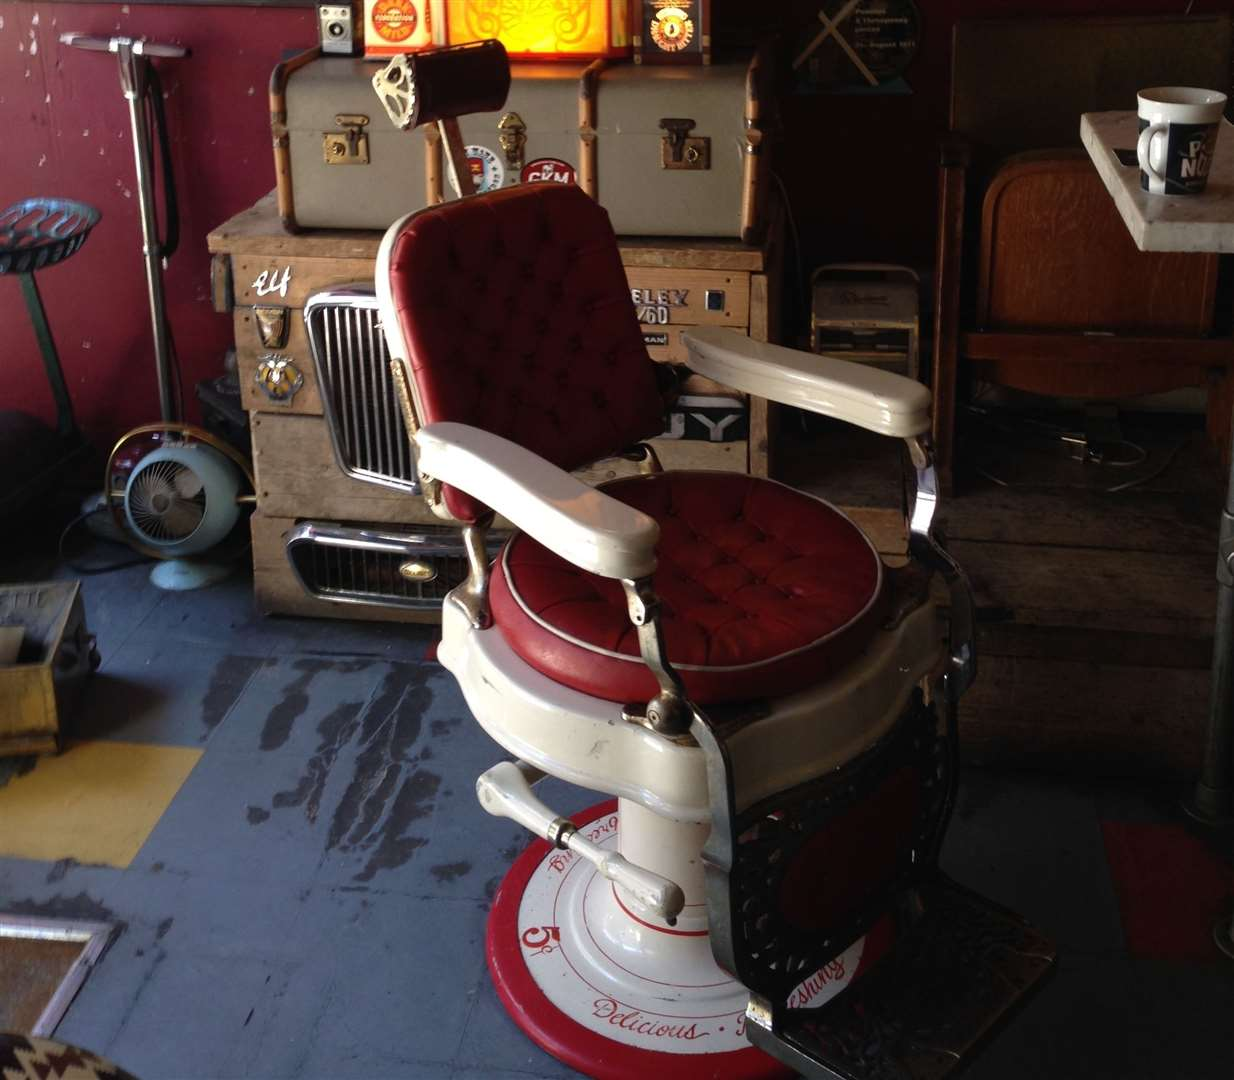 You can perch on an old barber chair while sipping your cider